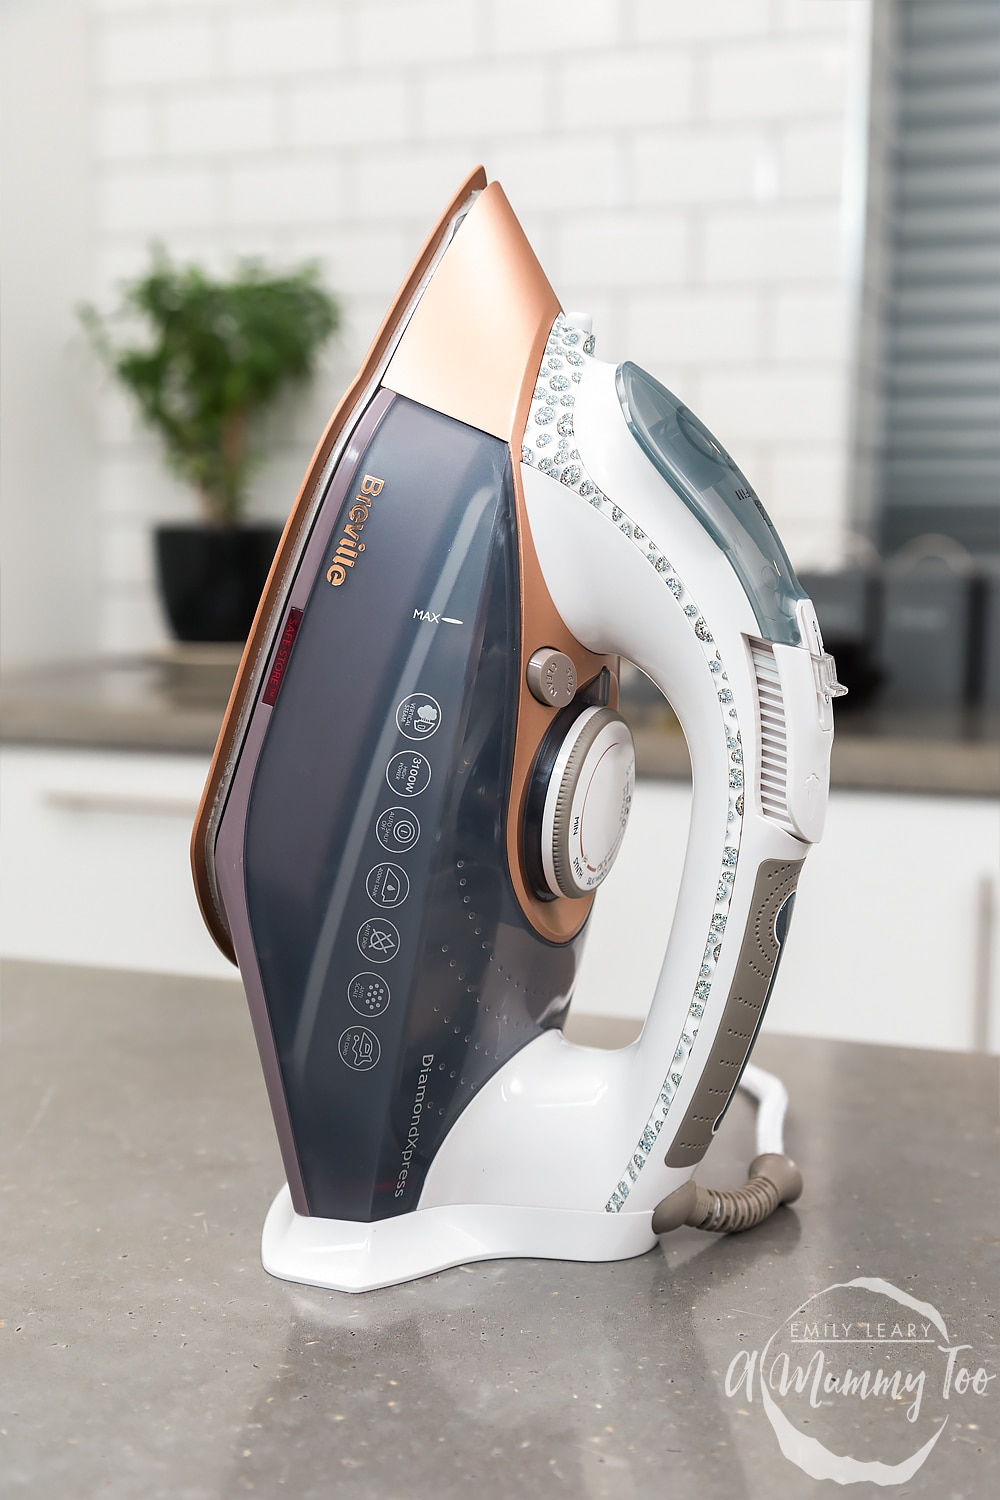 Side angle shot Breville DiamondXpress 3100W Steam Iron with Ceramic Soleplate with amummytoo logo in lower-right corner